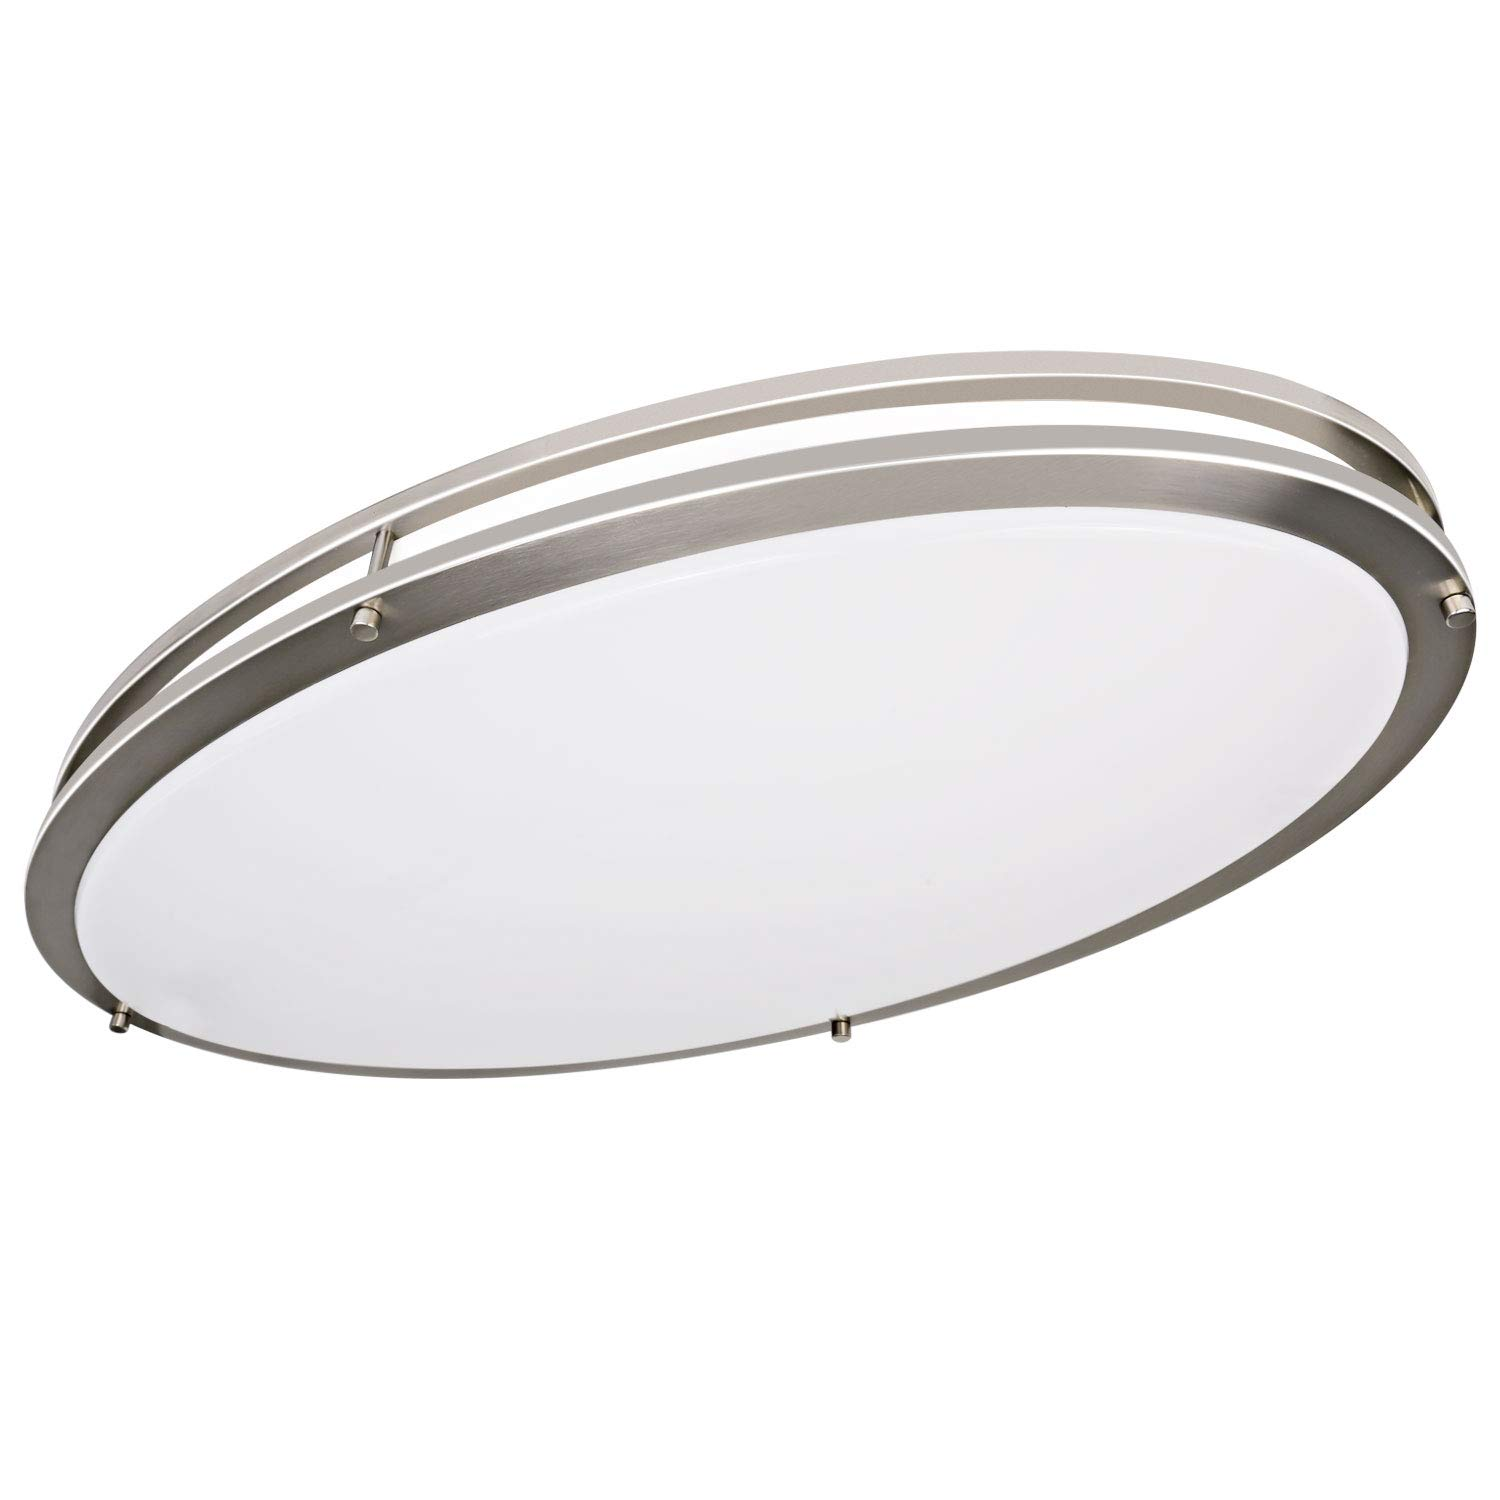 Hykolity 32 Inch Oval LED Ceiling Light, 35W [300W Equivalent] 3100Lm 4000K BN Finish Dimmable Saturn Flushmount Ceiling Light for Bedroom, Restroom, Walk in Closet, Washroom, Living Room